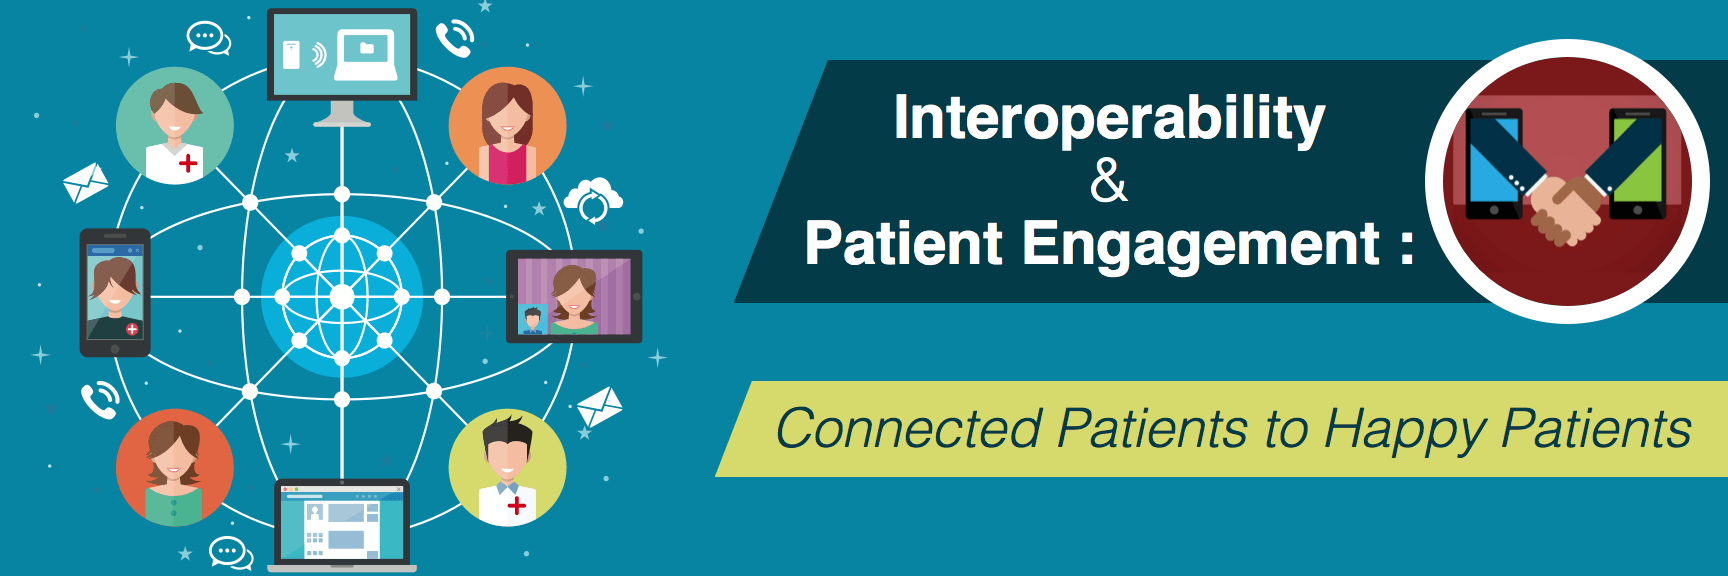 interoperability and patient engagement